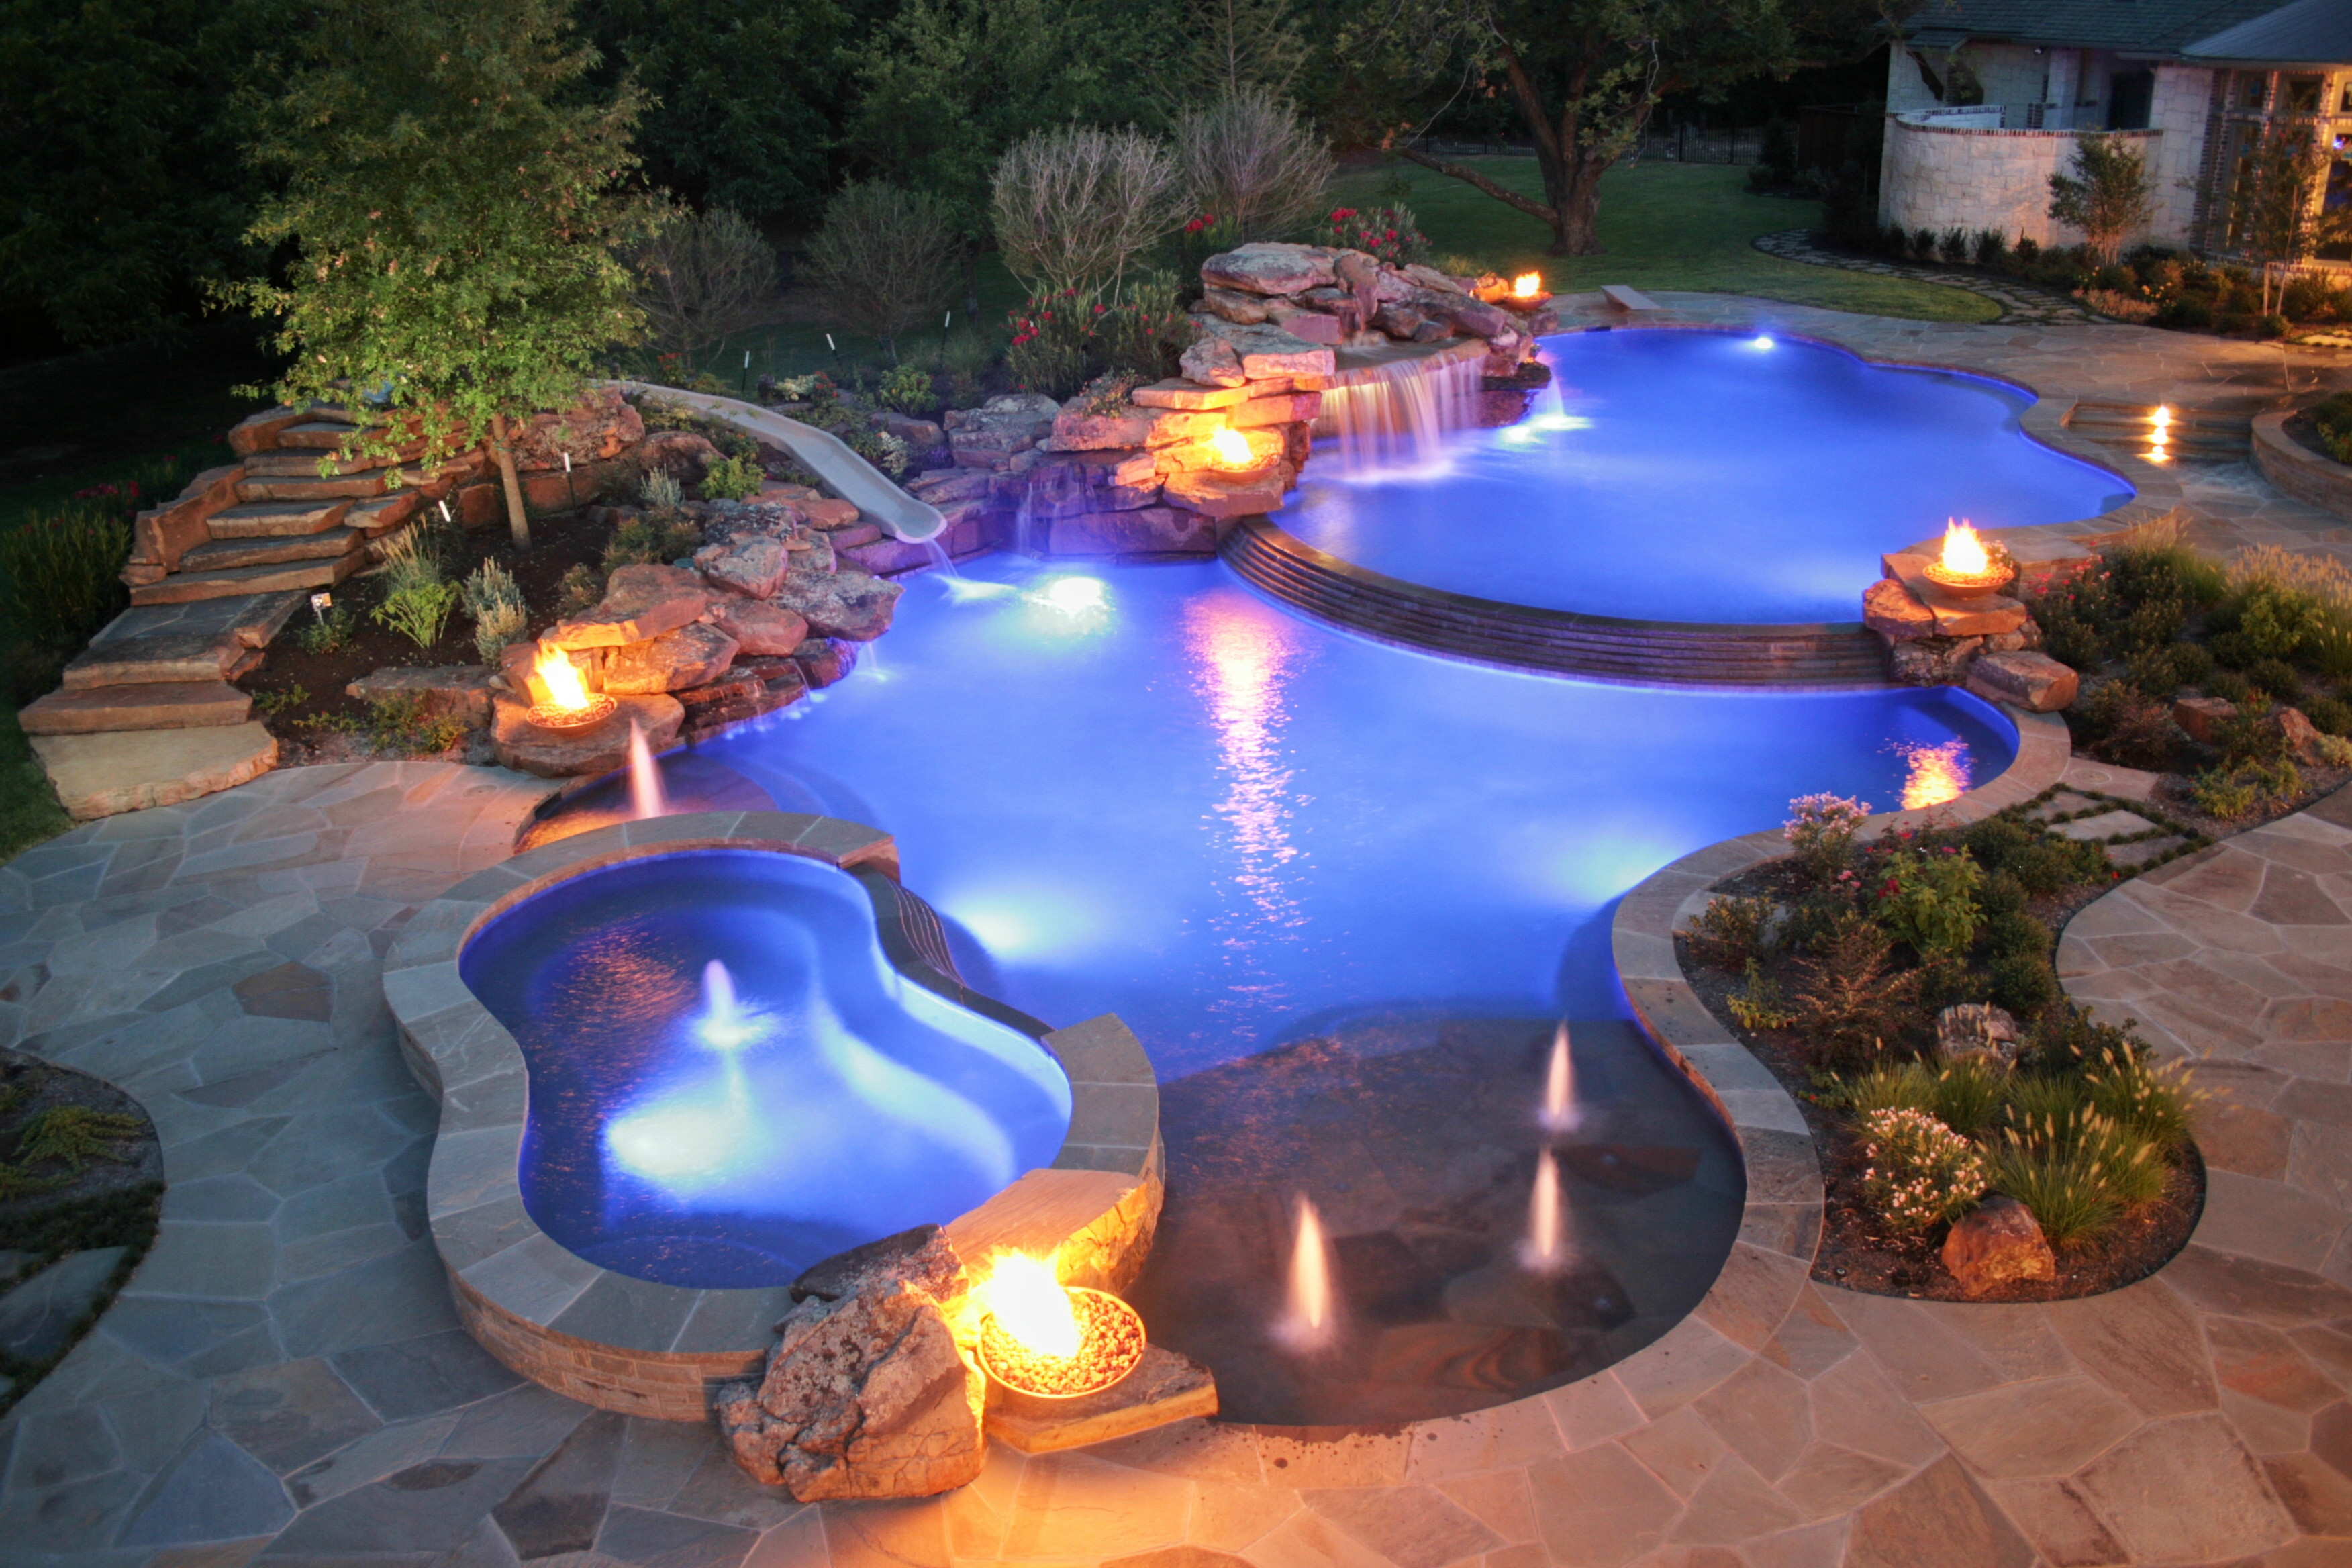 A stone patio with greenery and fire bowls surrounding a vibrant blue swimming pool